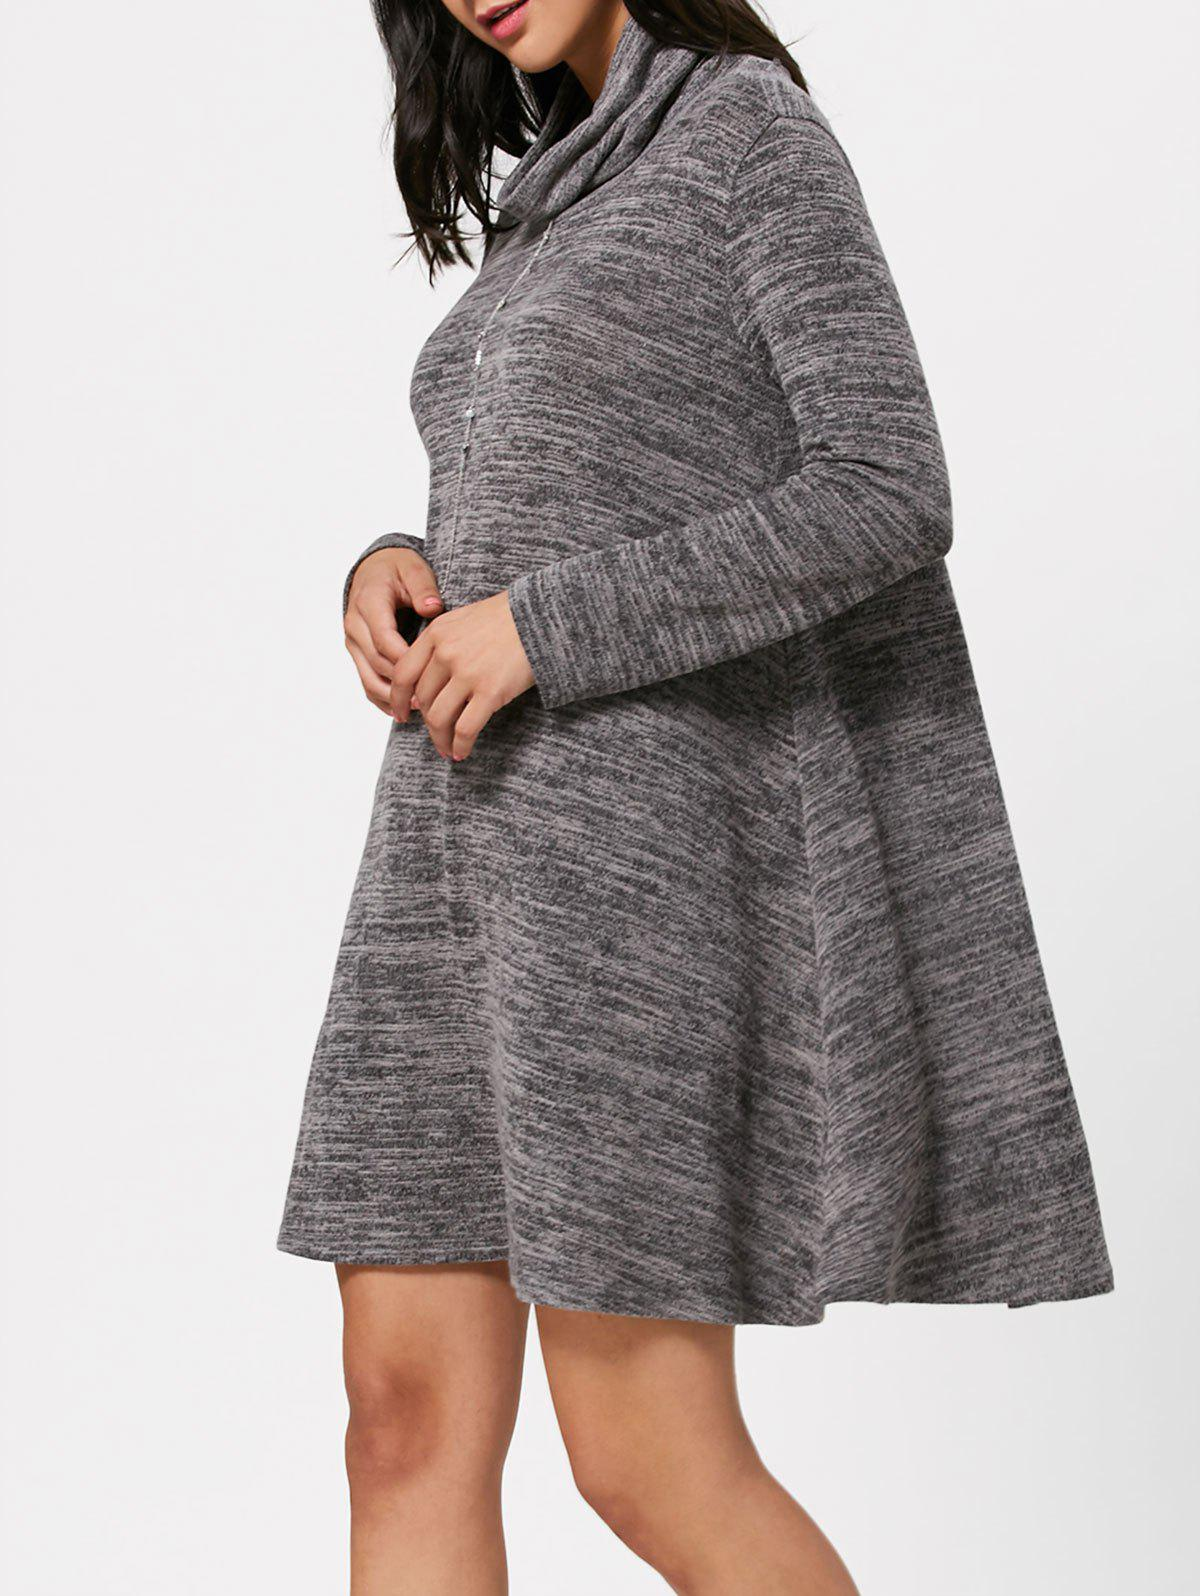 High Neck Long Sleeve Knit Tunic Dress - GRAY XL